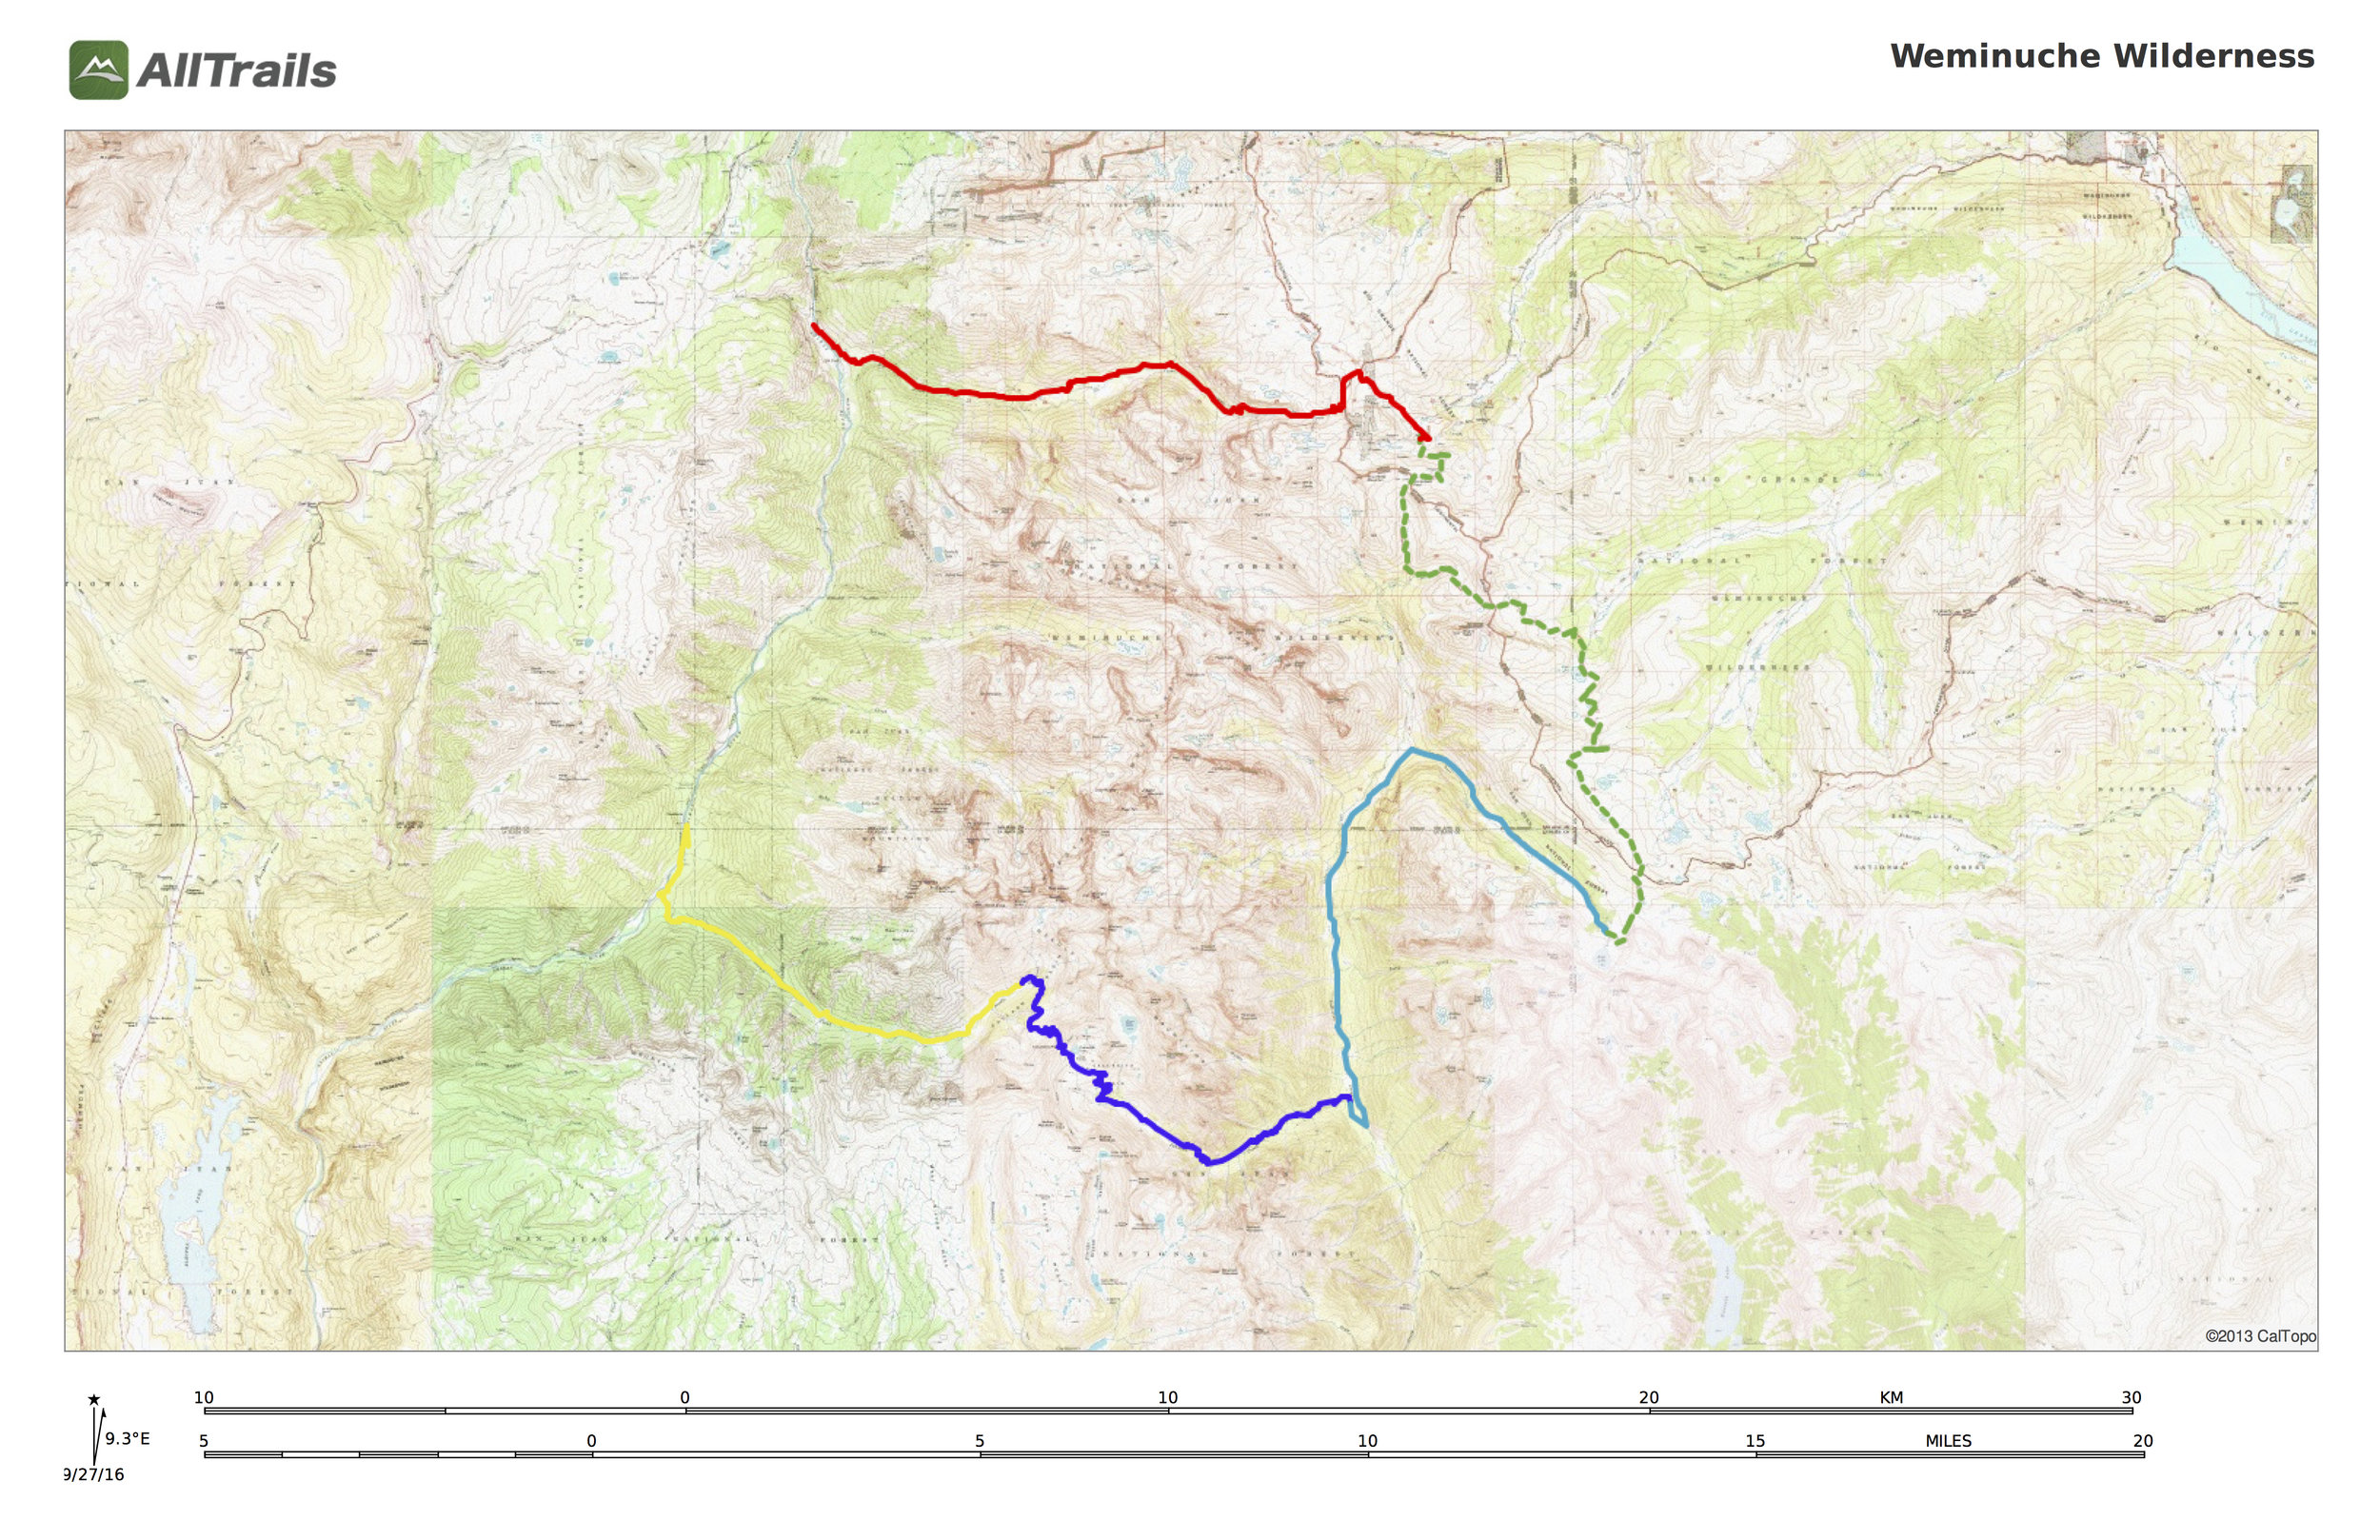 Our original route, which we ended up sticking to for the most part, save for some extra milage on day 4.